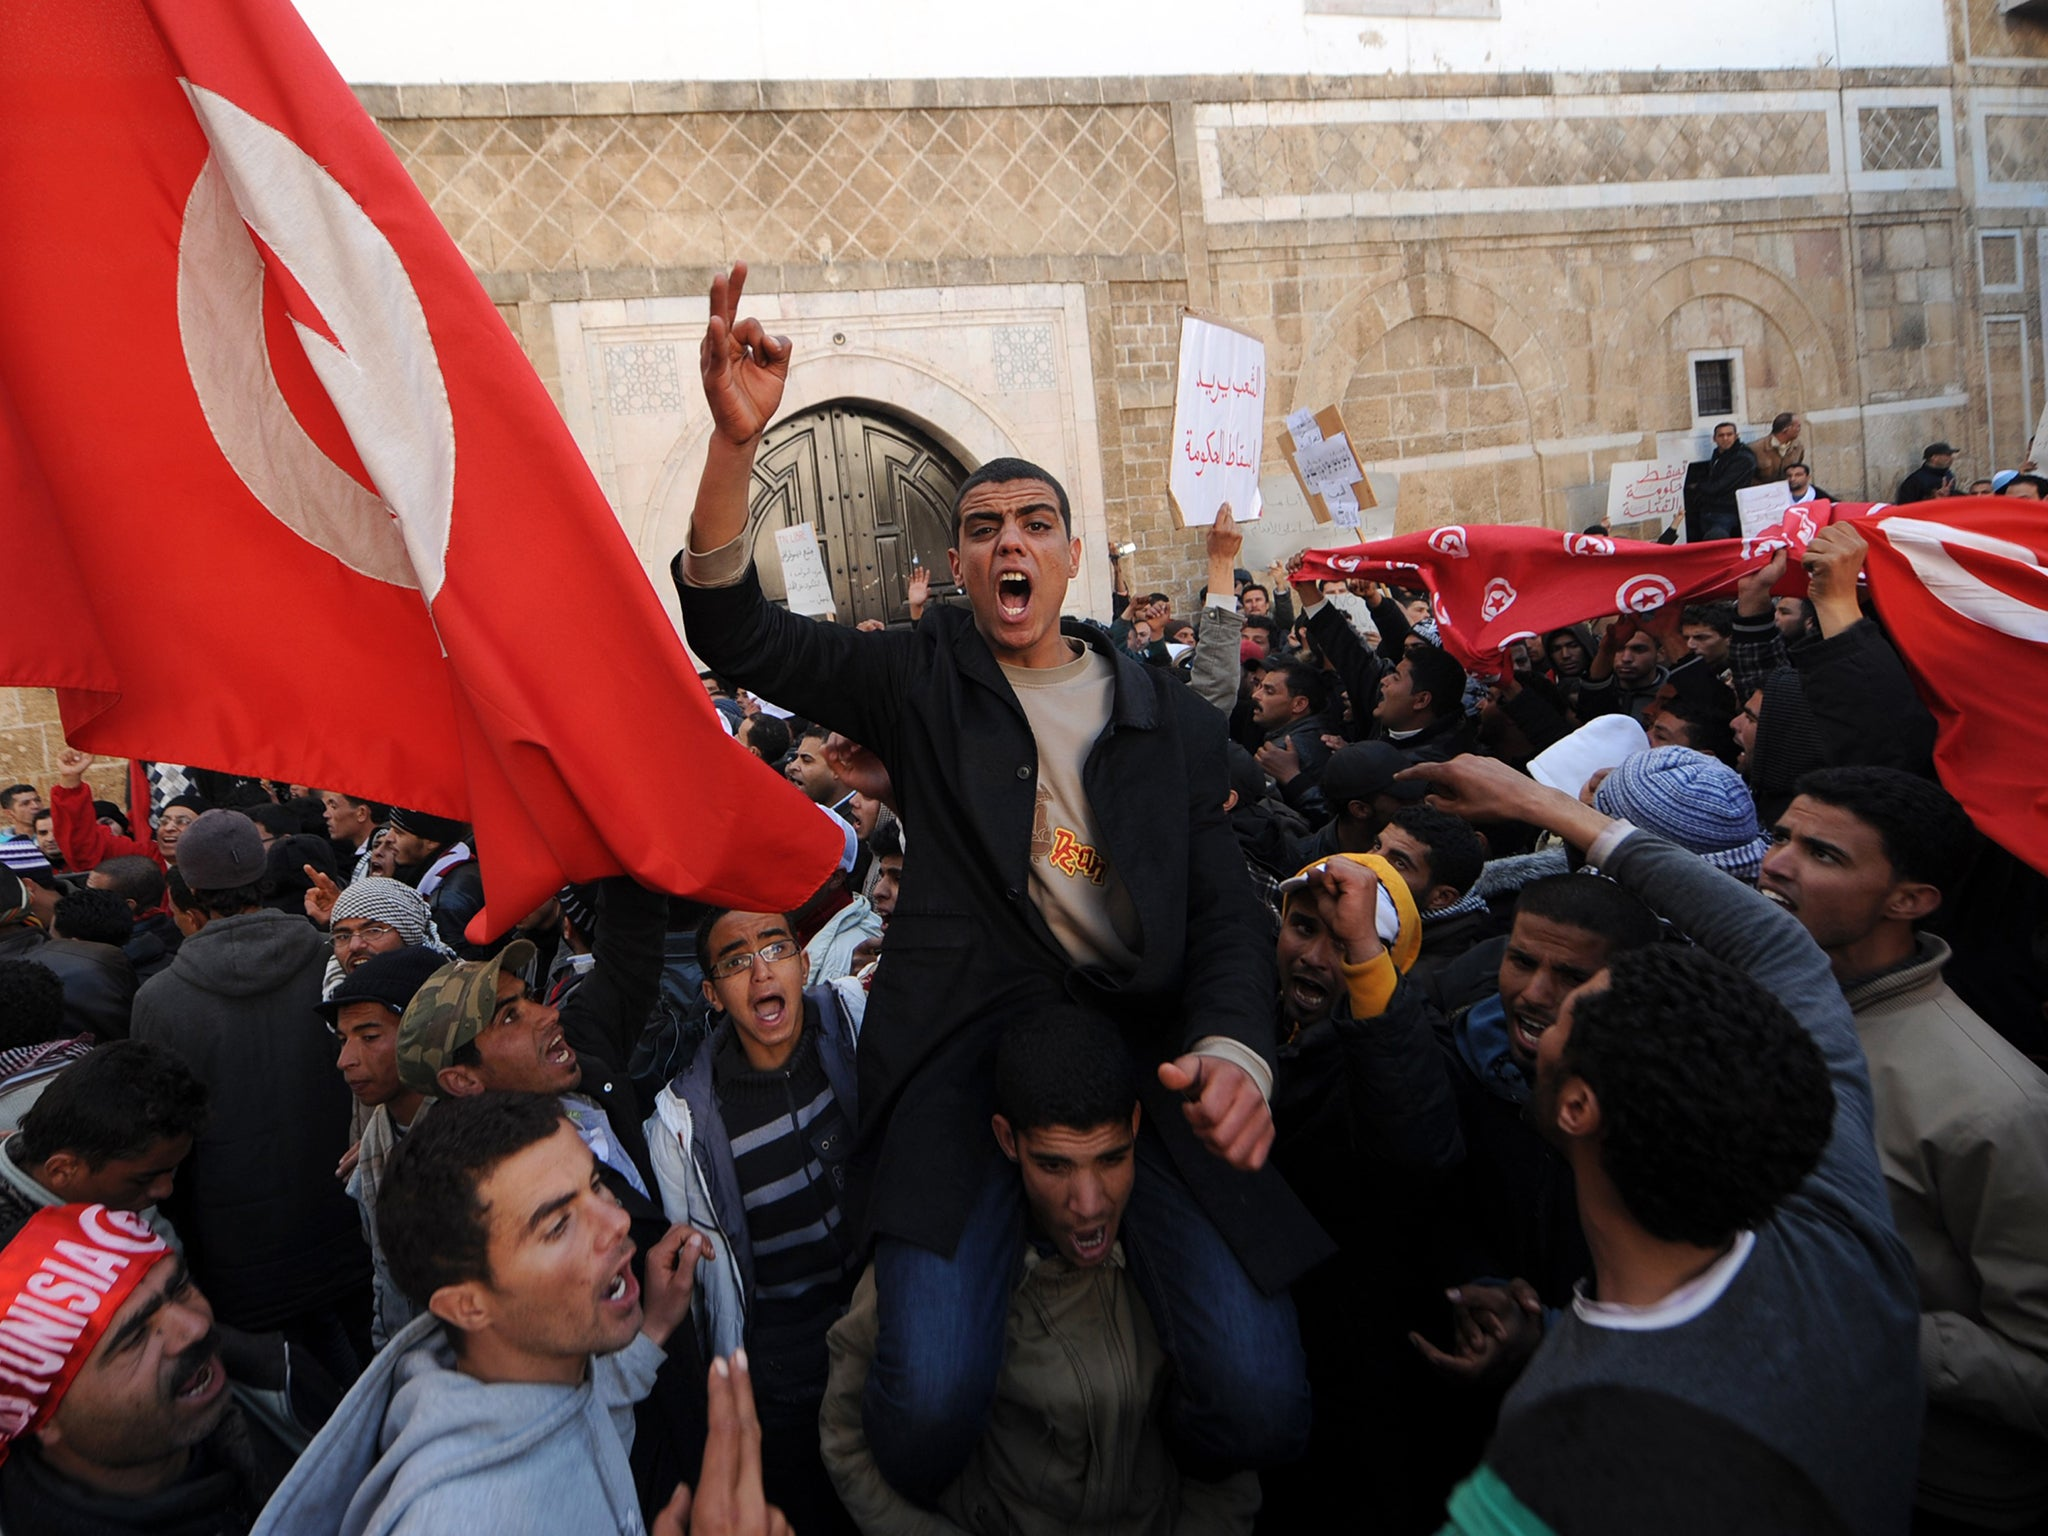 Arab Spring: How hope sparked in Tunisia five years ago ... Arab Spring Violence